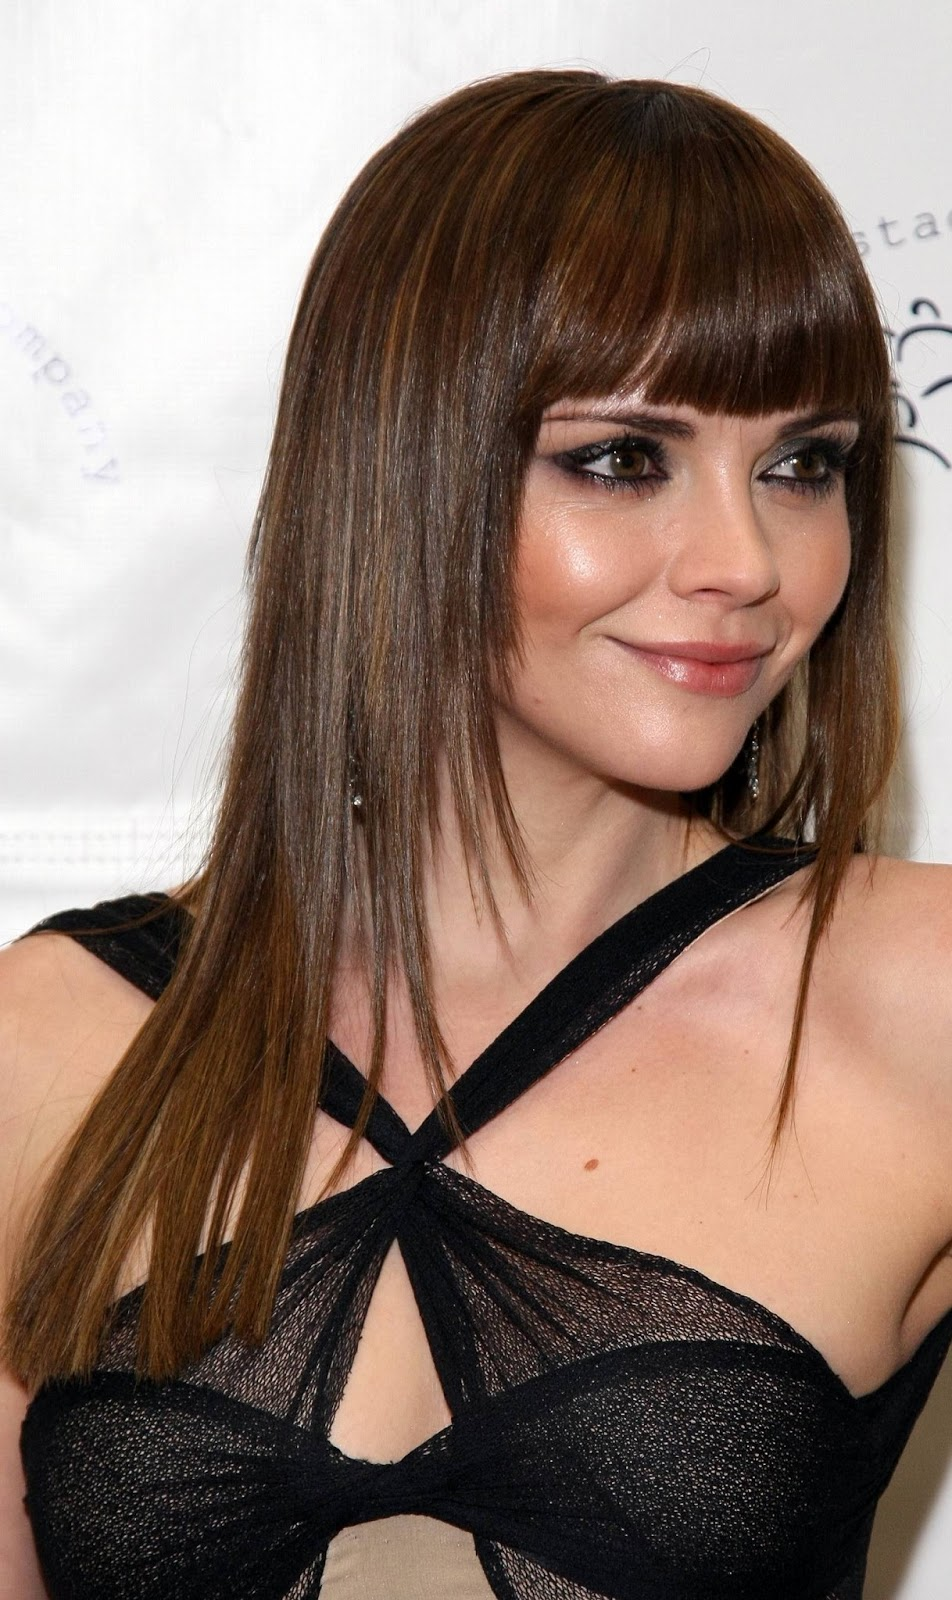 Miraculous Medium Haircuts With Bangs Fringe Hairstyles 2013 Chic And Short Hairstyles Gunalazisus